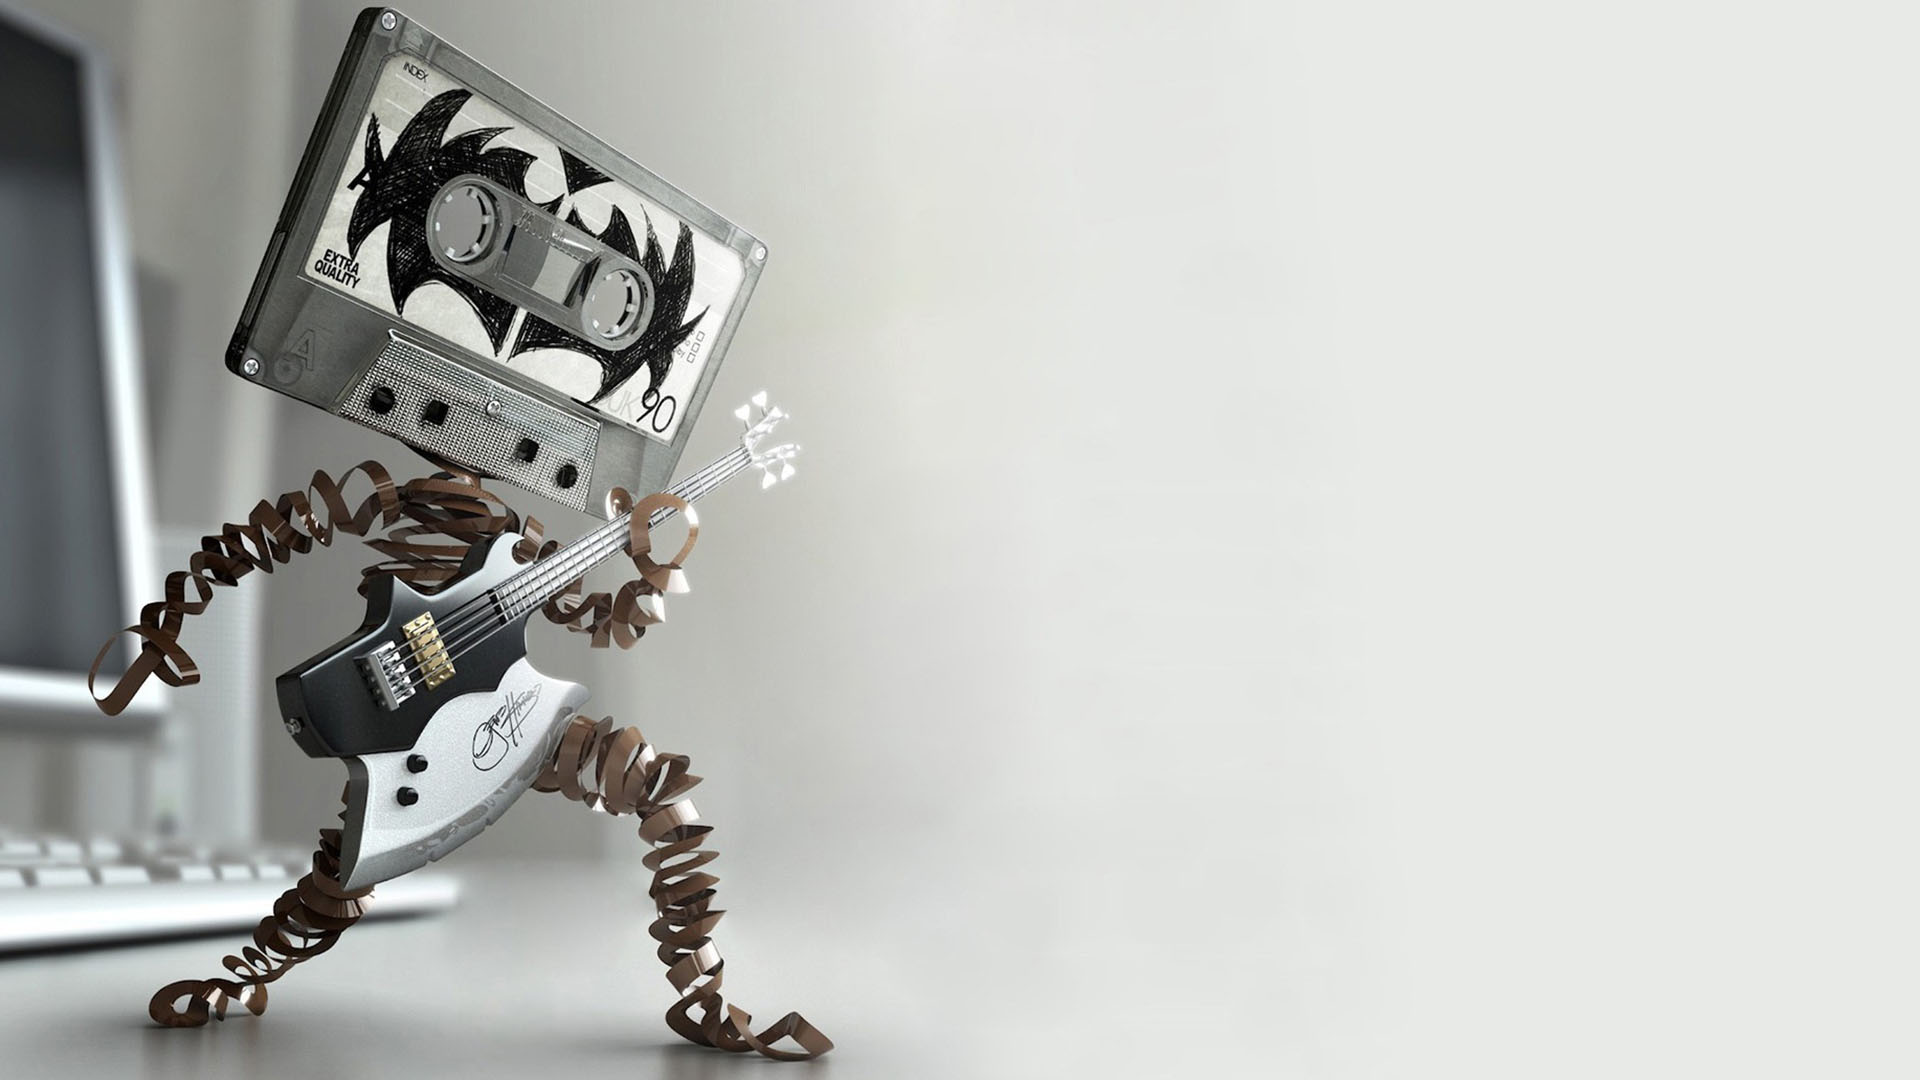 Music wallpaper 1920x1080 36981